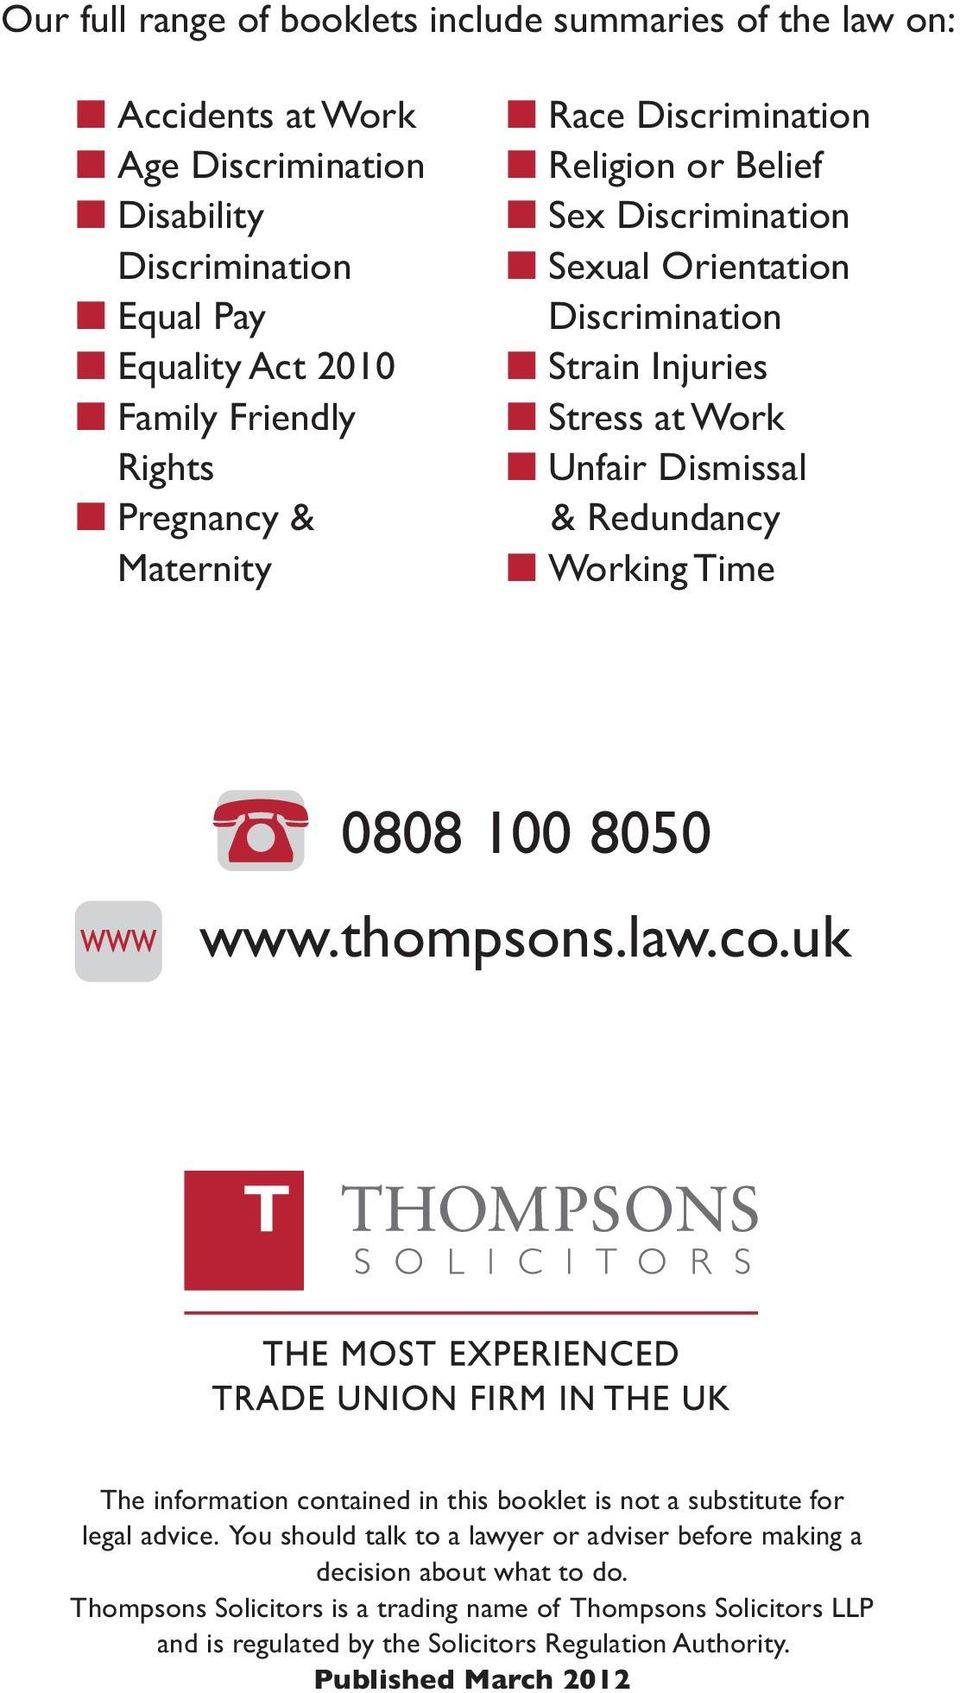 Working Time 0808 100 8050 www.thompsons.law.co.uk The information contained in this booklet is not a substitute for legal advice.